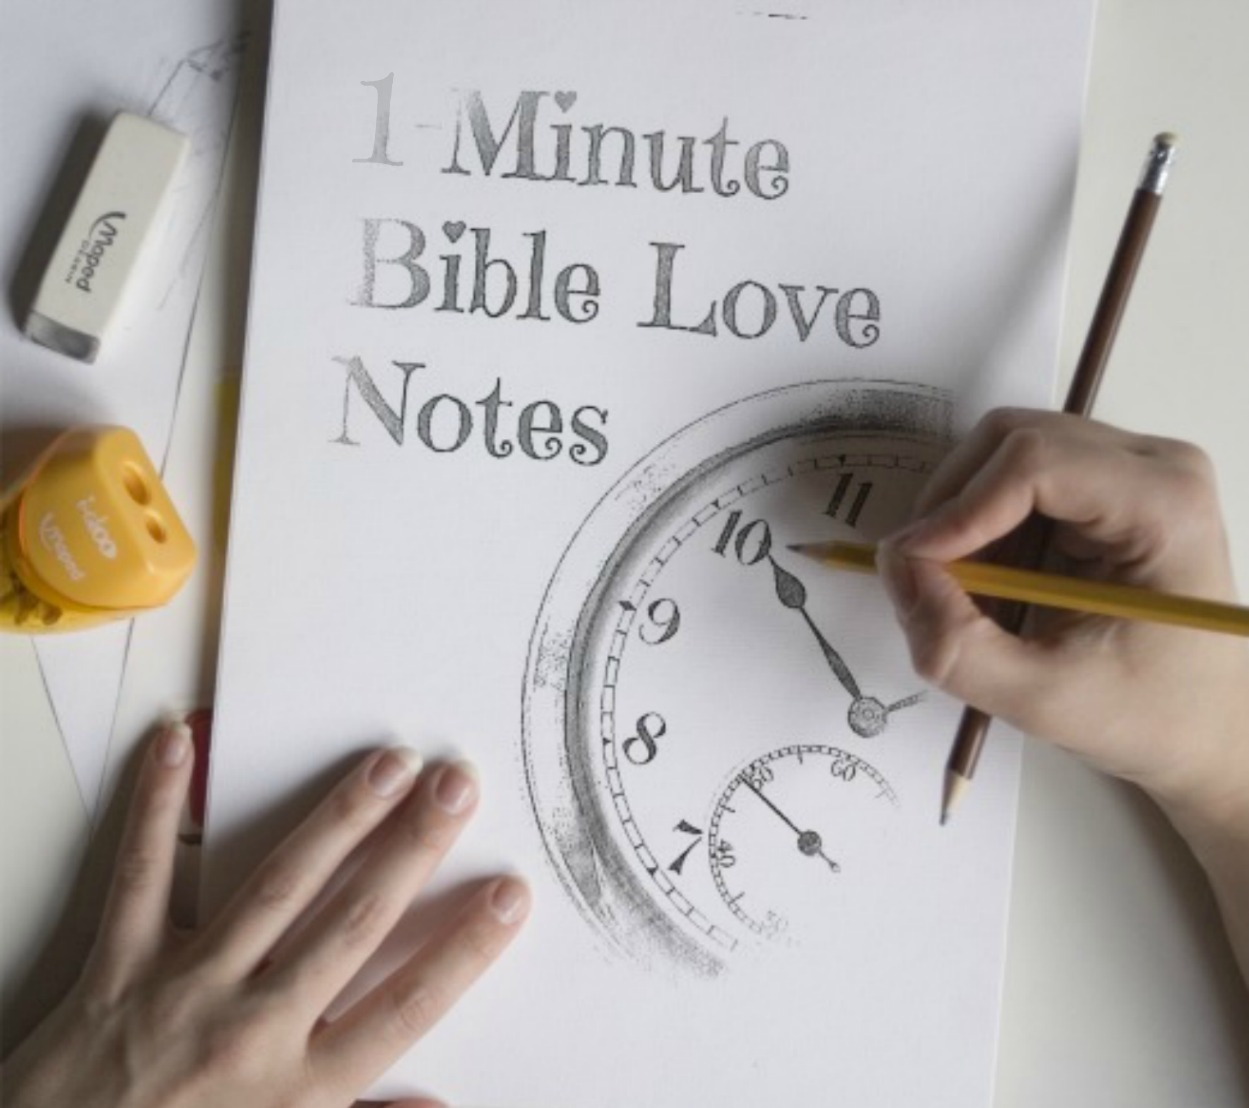 Exhaustive Archive of Bible Love Notes